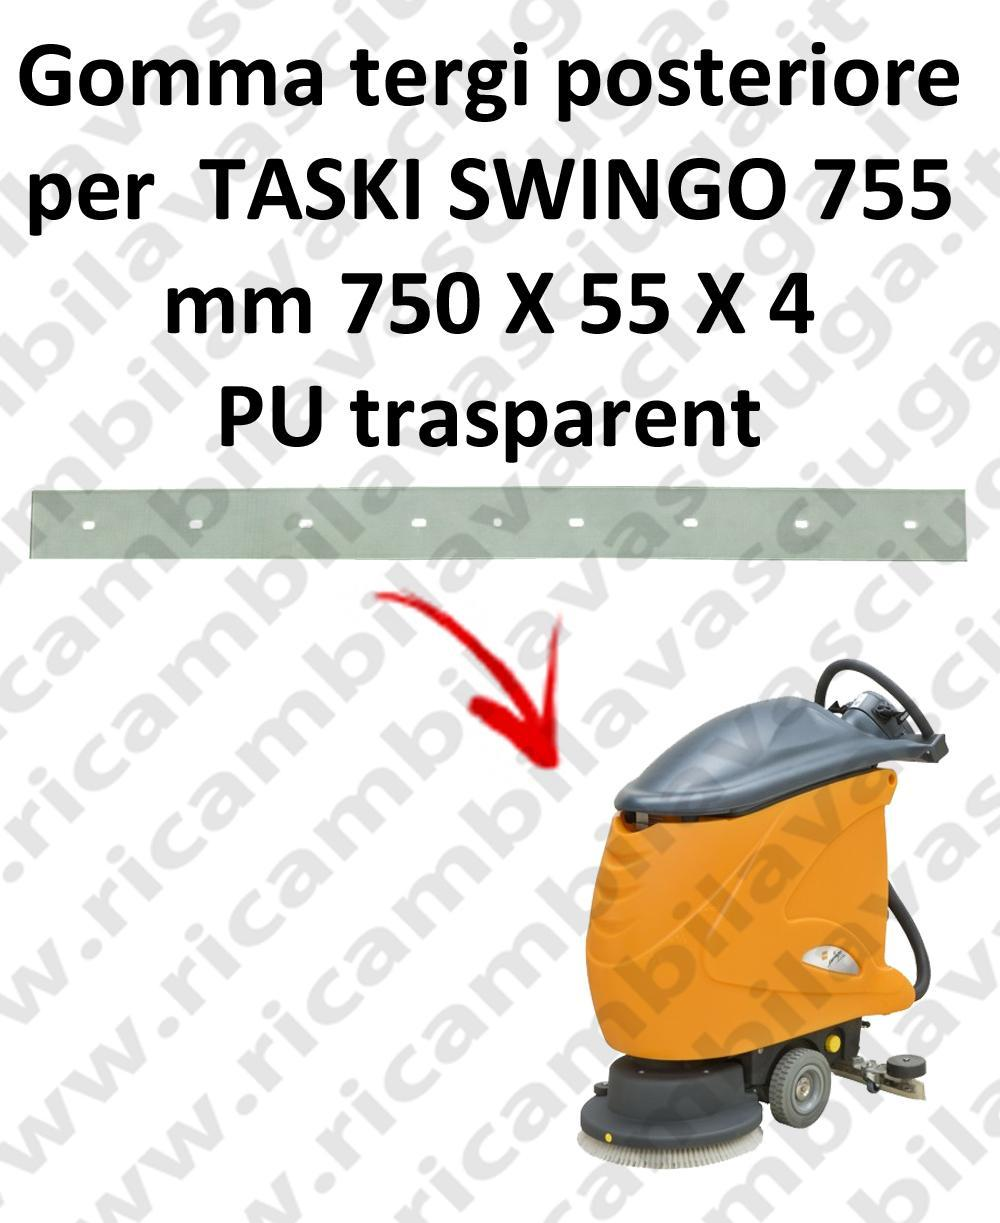 SWINGO 755  Back Squeegee rubber for TASKI accessories, reaplacement, spare parts,o scrubber dryer squeegee